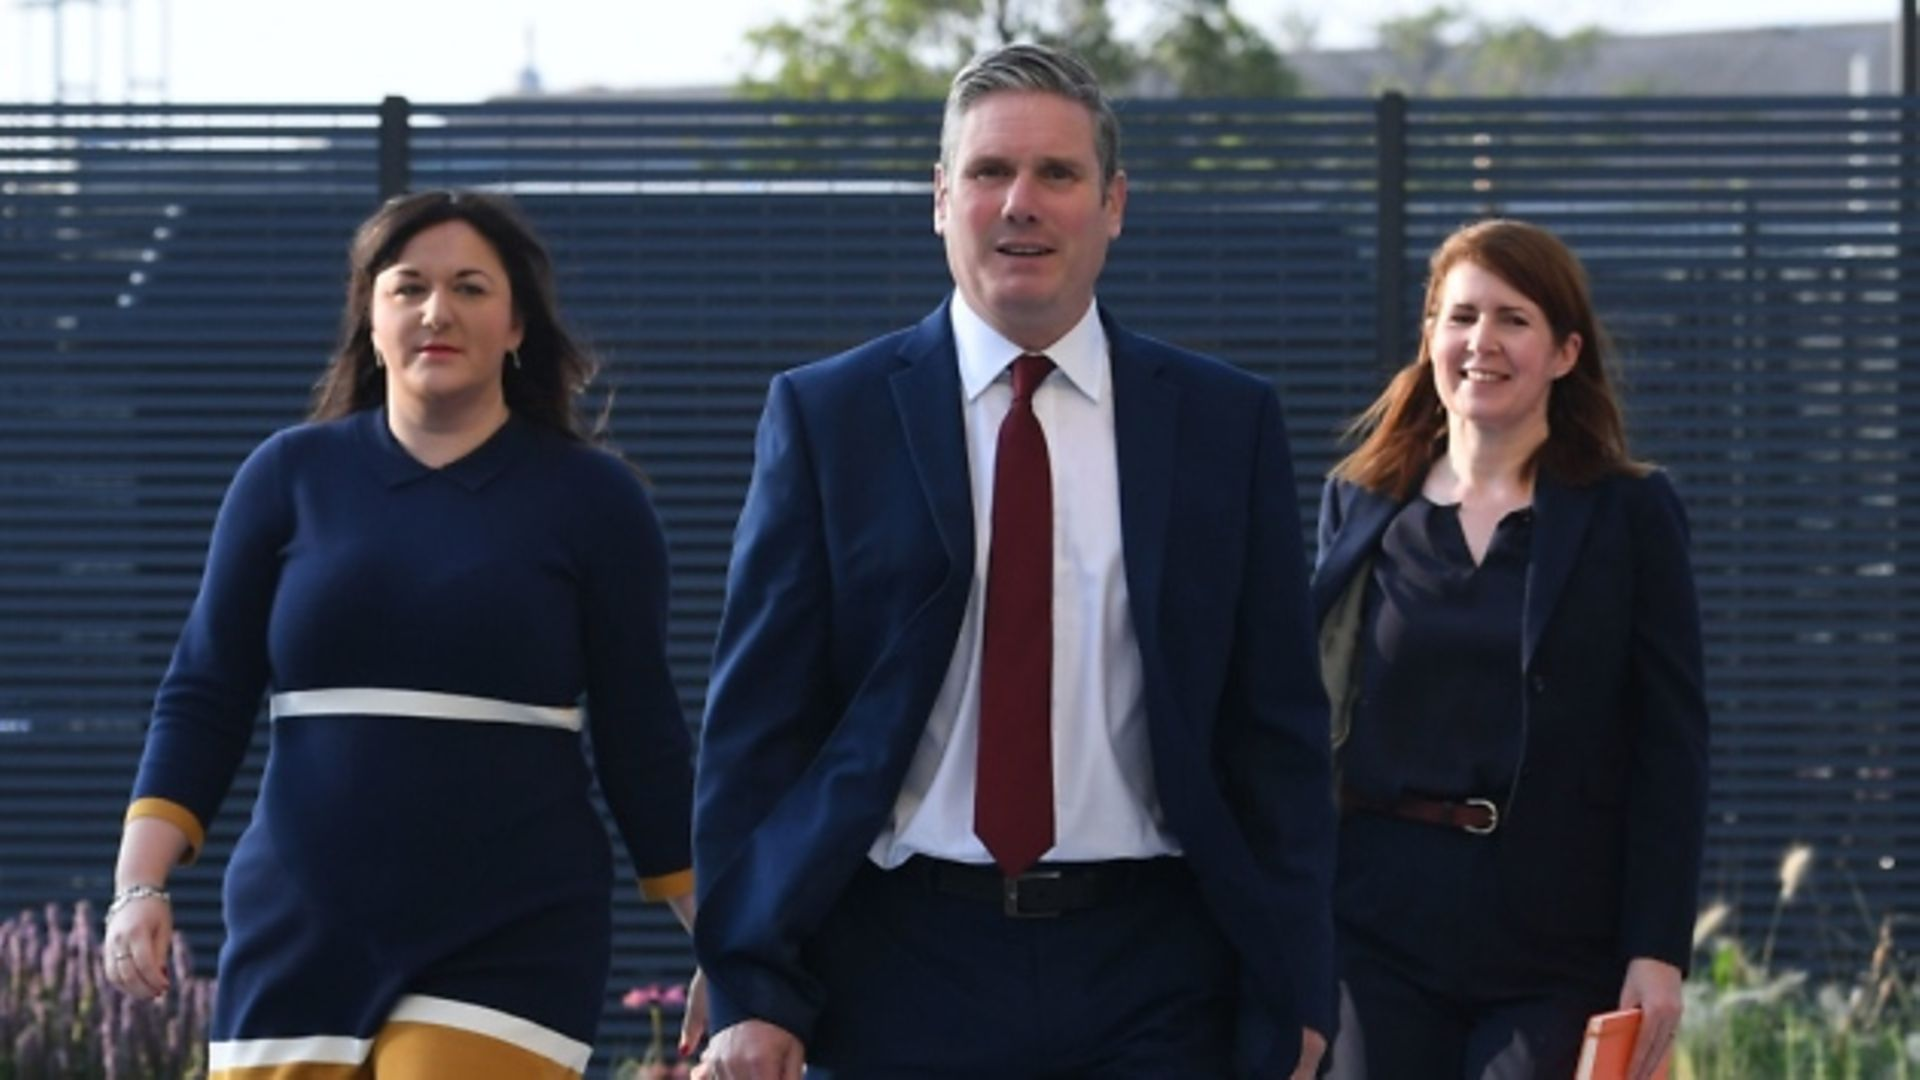 Labour leader Sir Keir Starmer arrives with Ruth Smeeth (left) and his political director Jenny Chapman, to deliver his keynote speech during the party's online conference from the Danum Gallery, Library and Museum in Doncaster. Photograph: Stefan Rousseau/PA Wire.